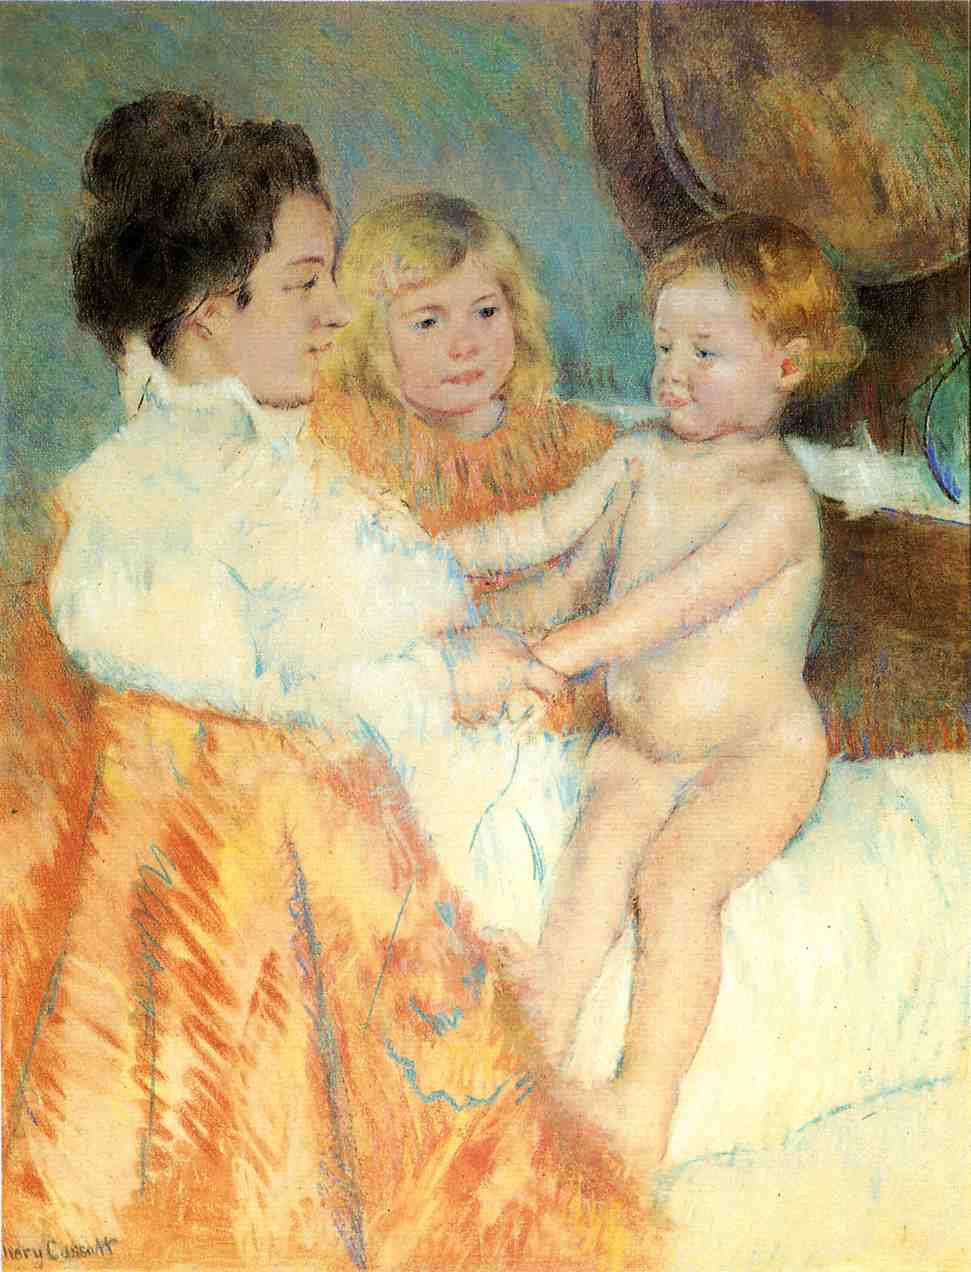 https://i1.wp.com/uploads0.wikipaintings.org/images/mary-cassatt/mother-sara-and-the-baby-1.jpg